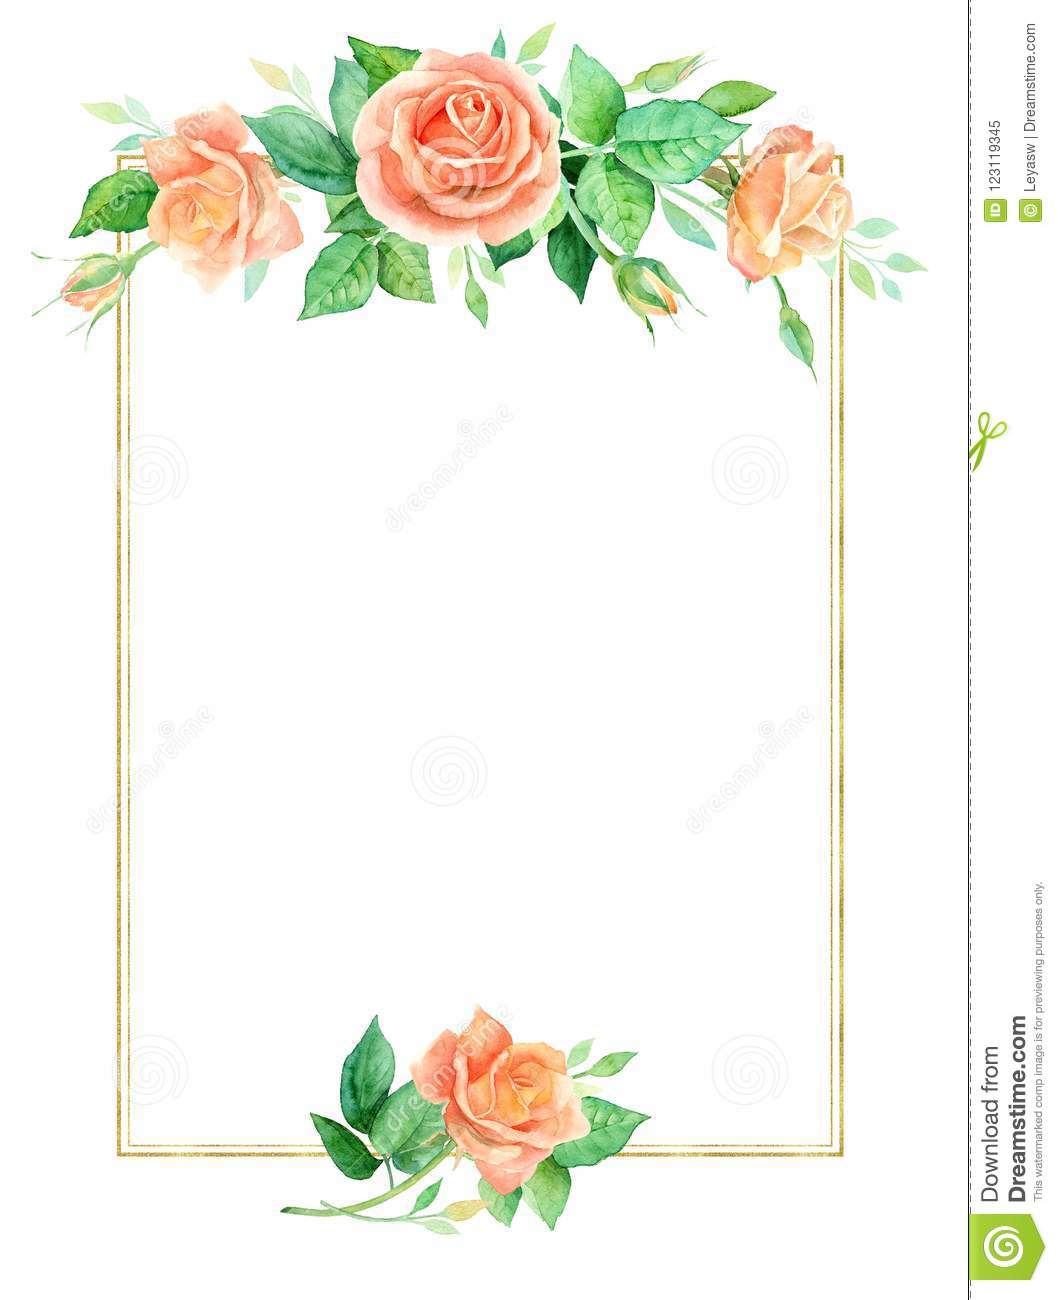 graphic relating to Watercolor Floral Border Paper Printable known as Sq. Floral Heritage With A Vibrant Watercolor Bouquets